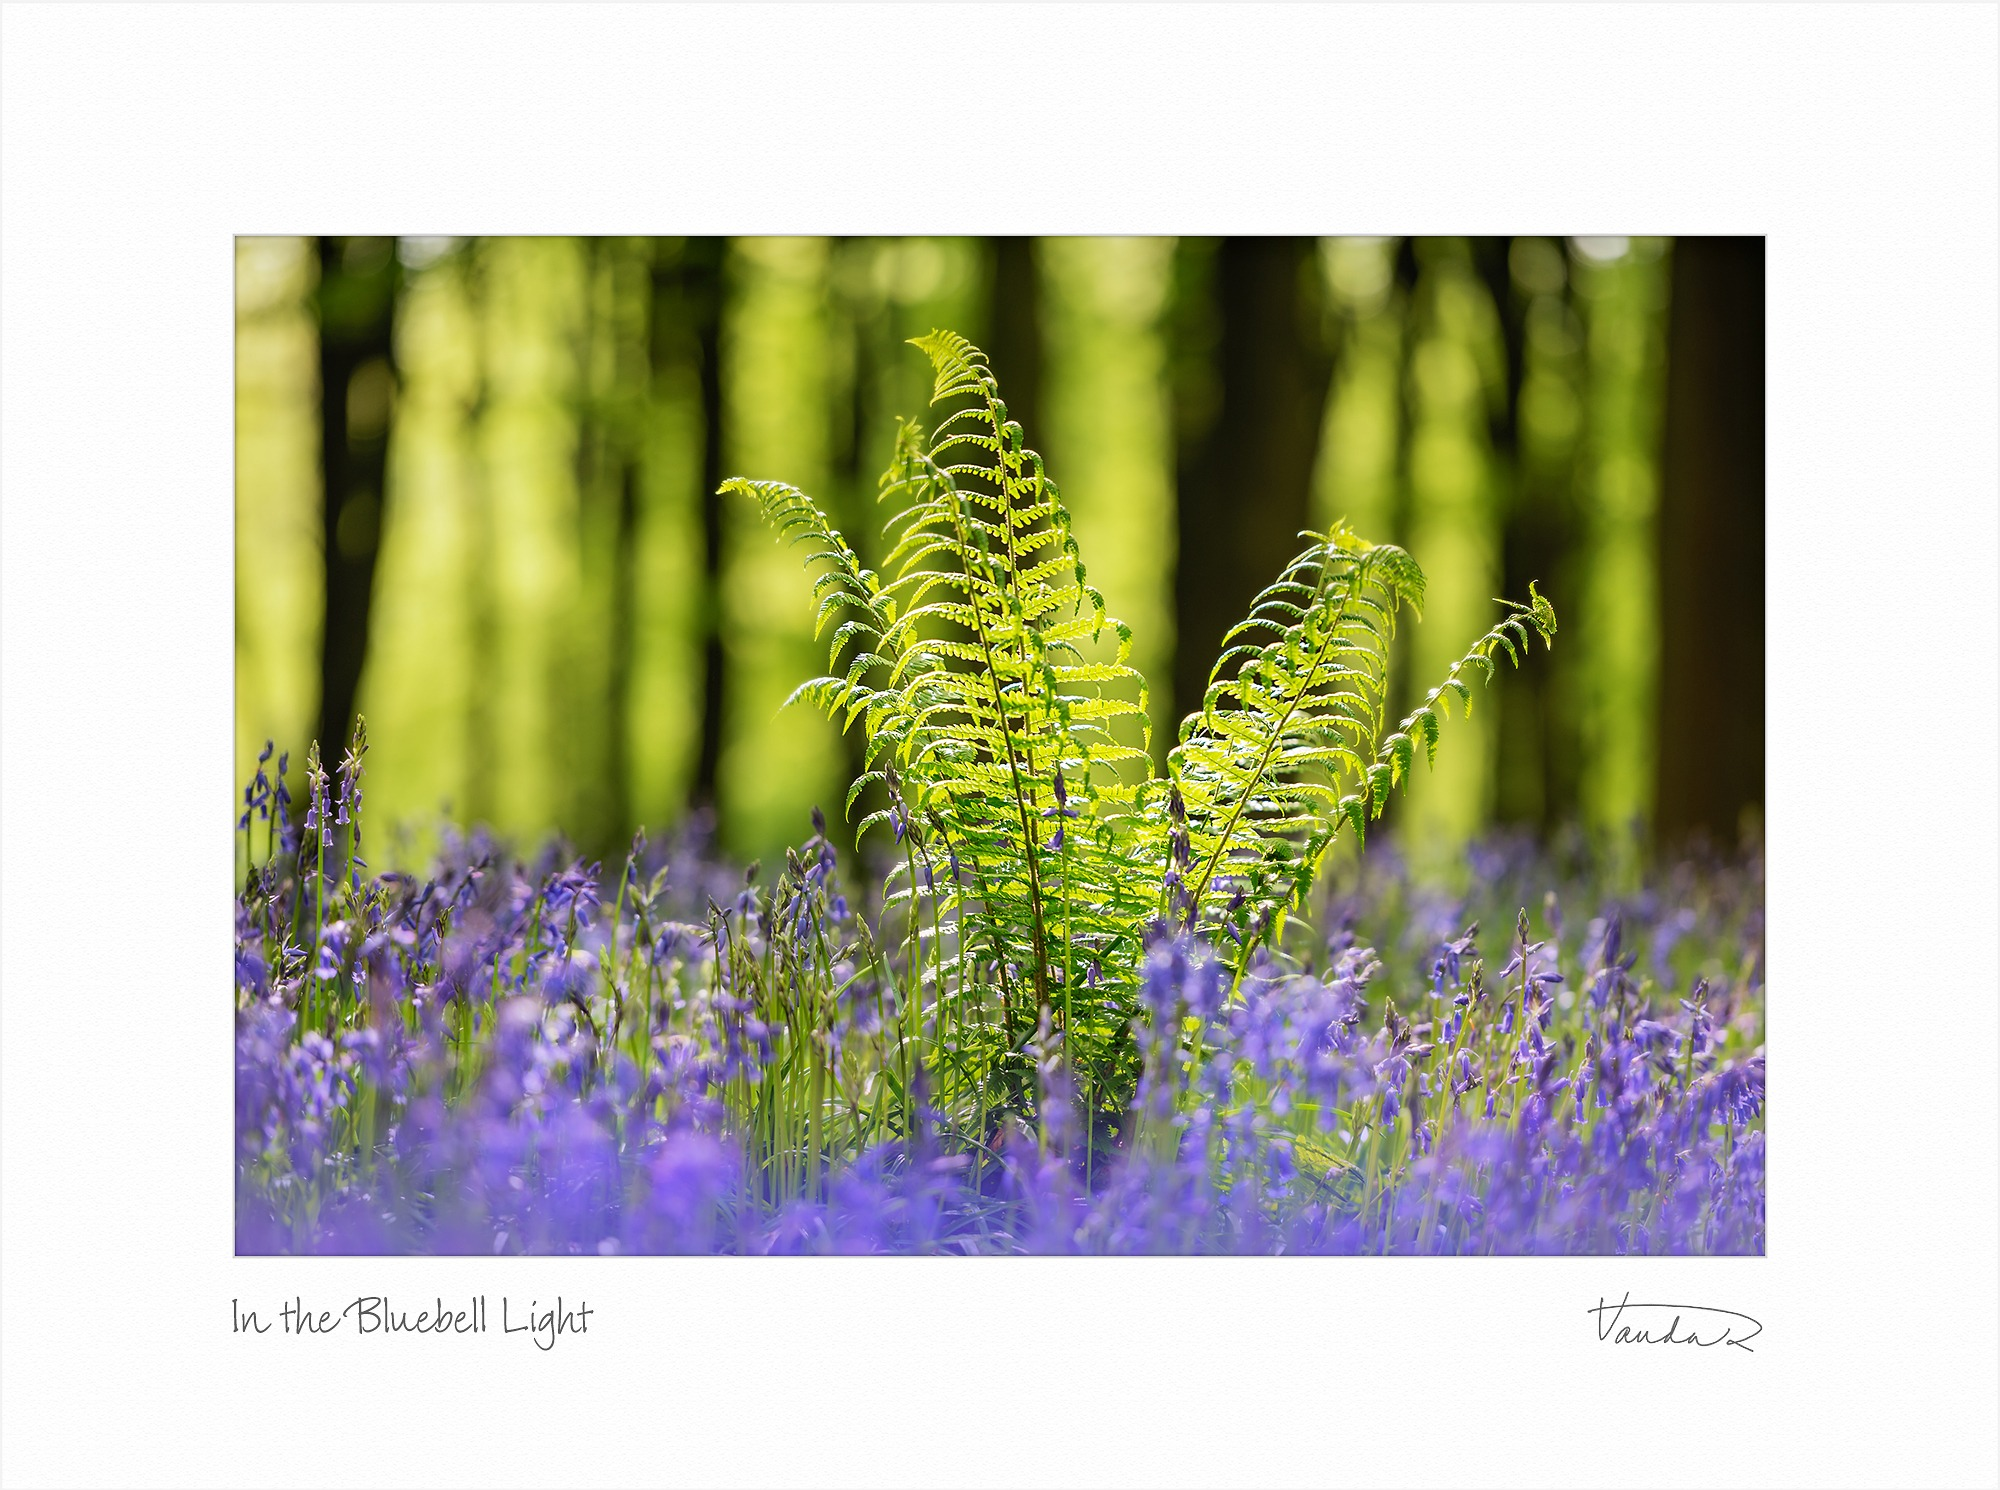 In the Bluebell Light